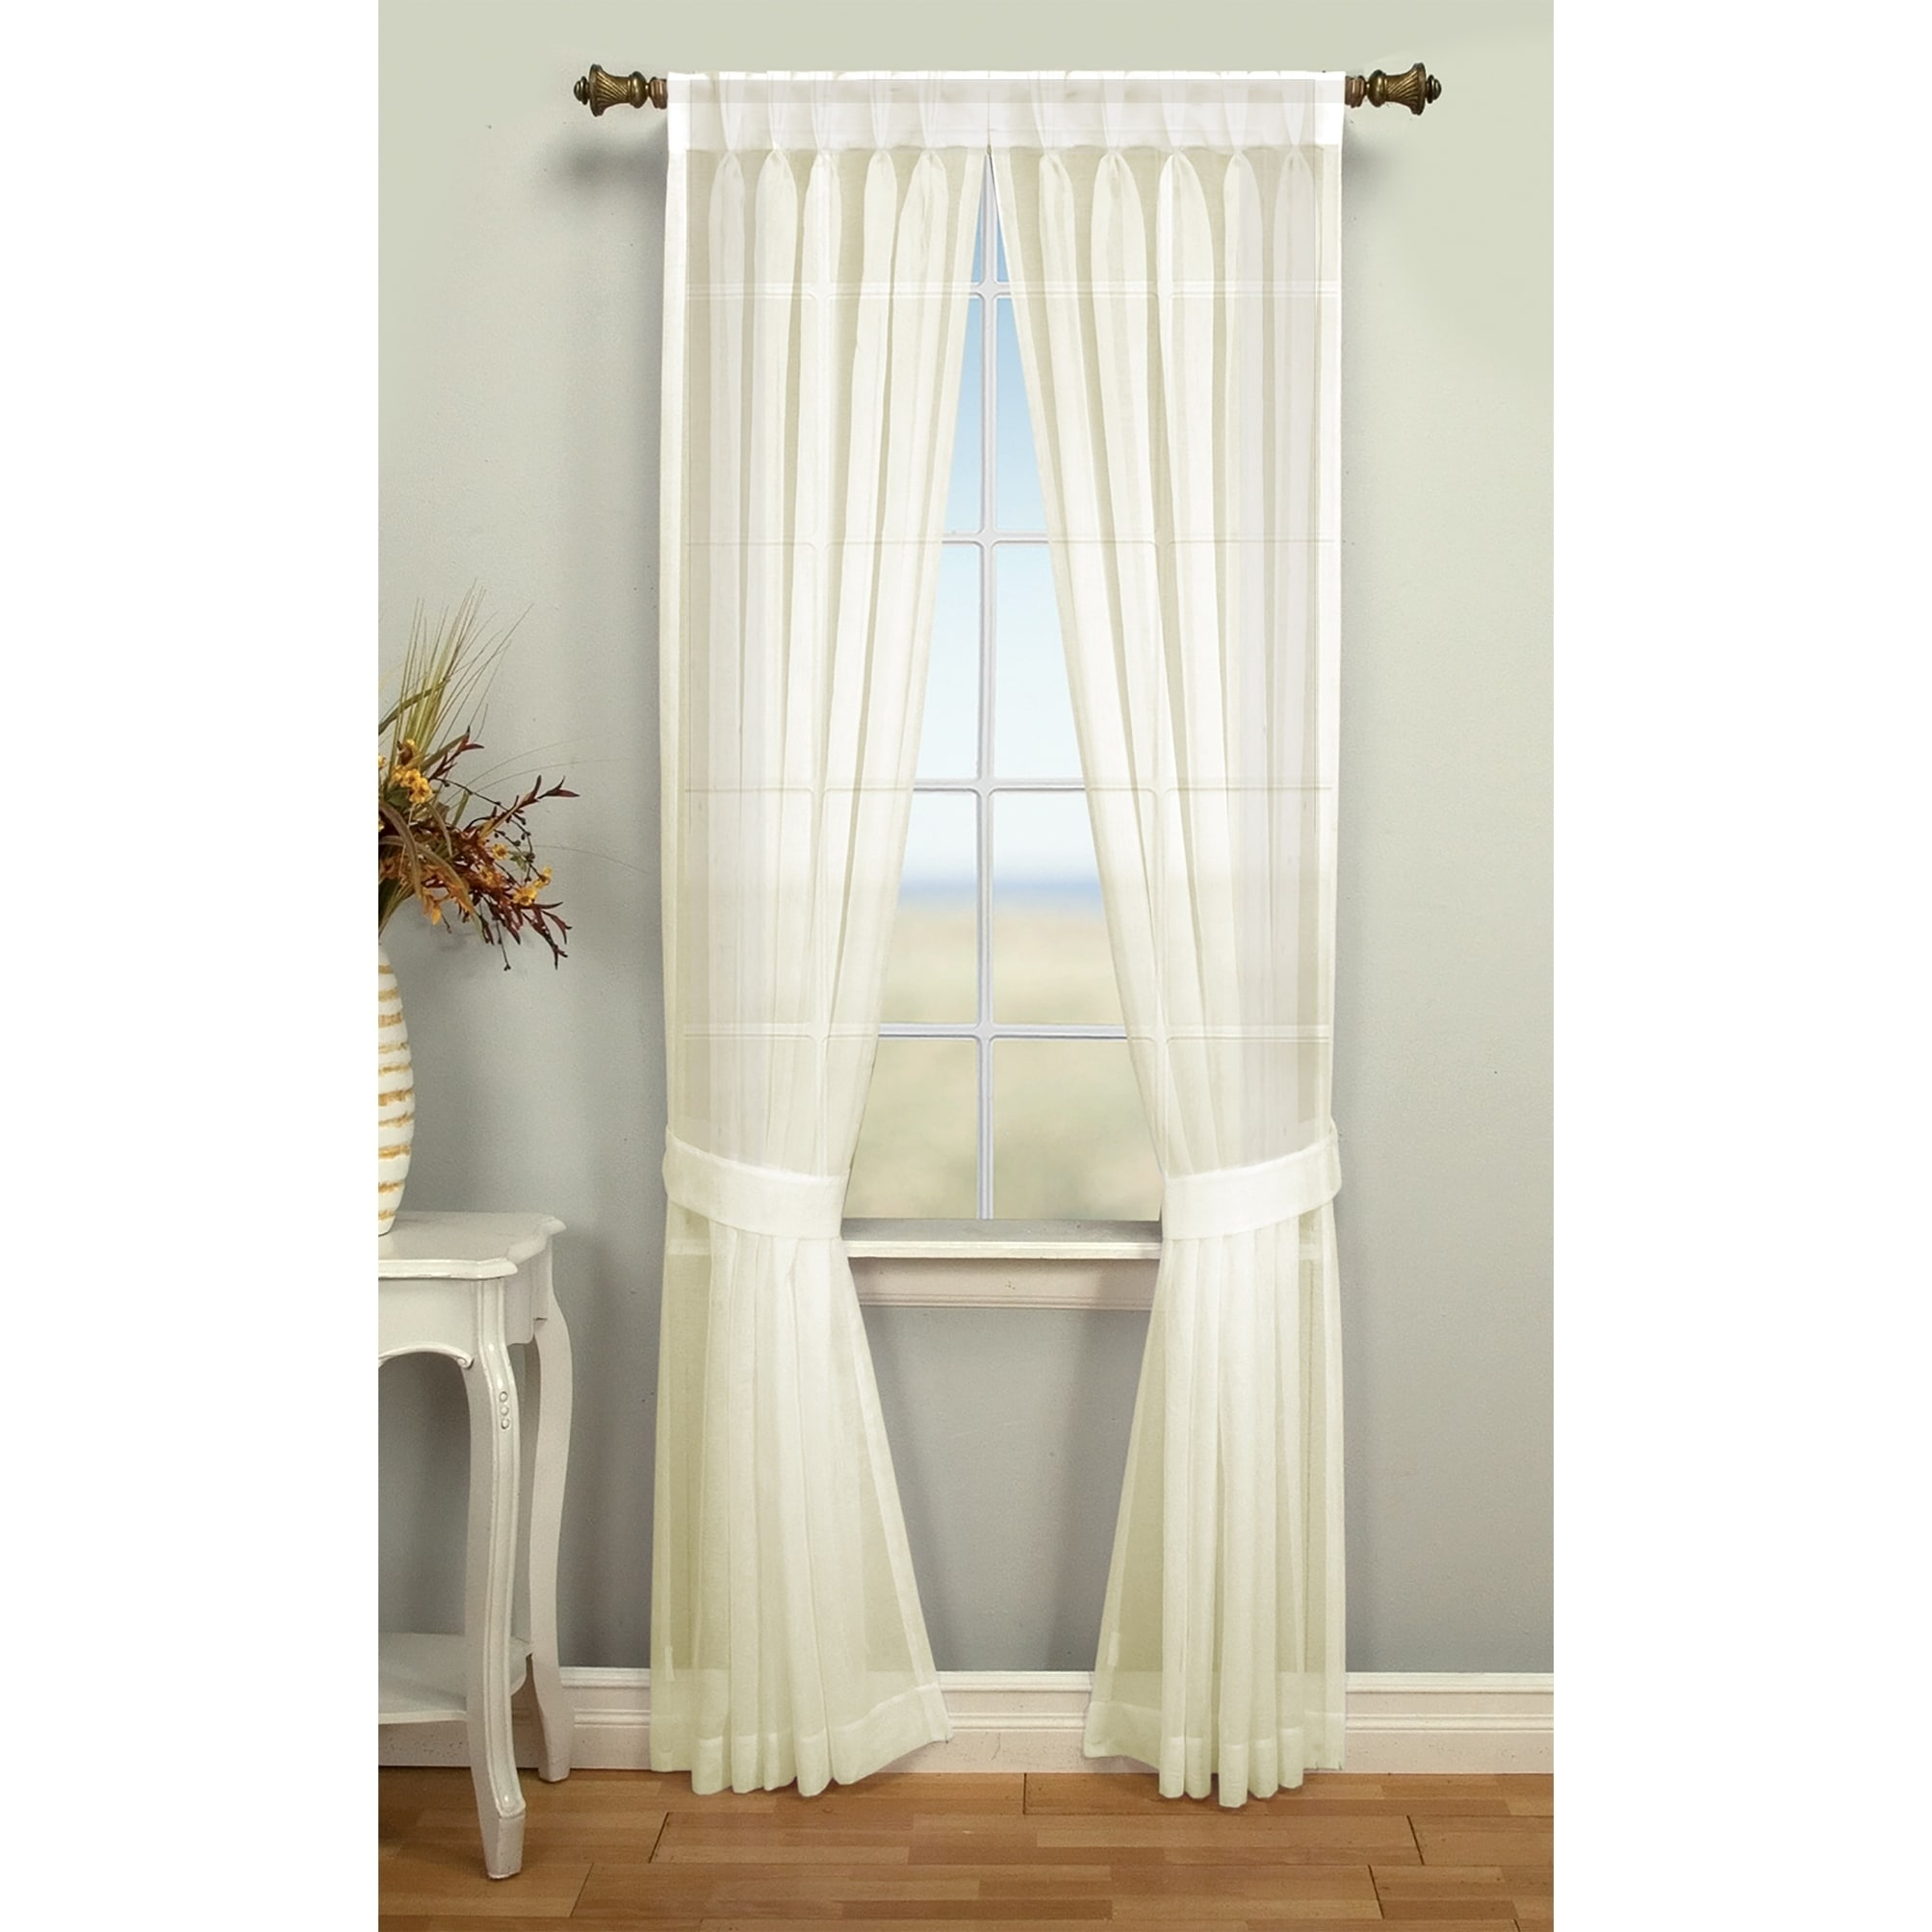 Details About Palm Beach Pinch Pleated Top With Back Tabs Curtain Panel Pair